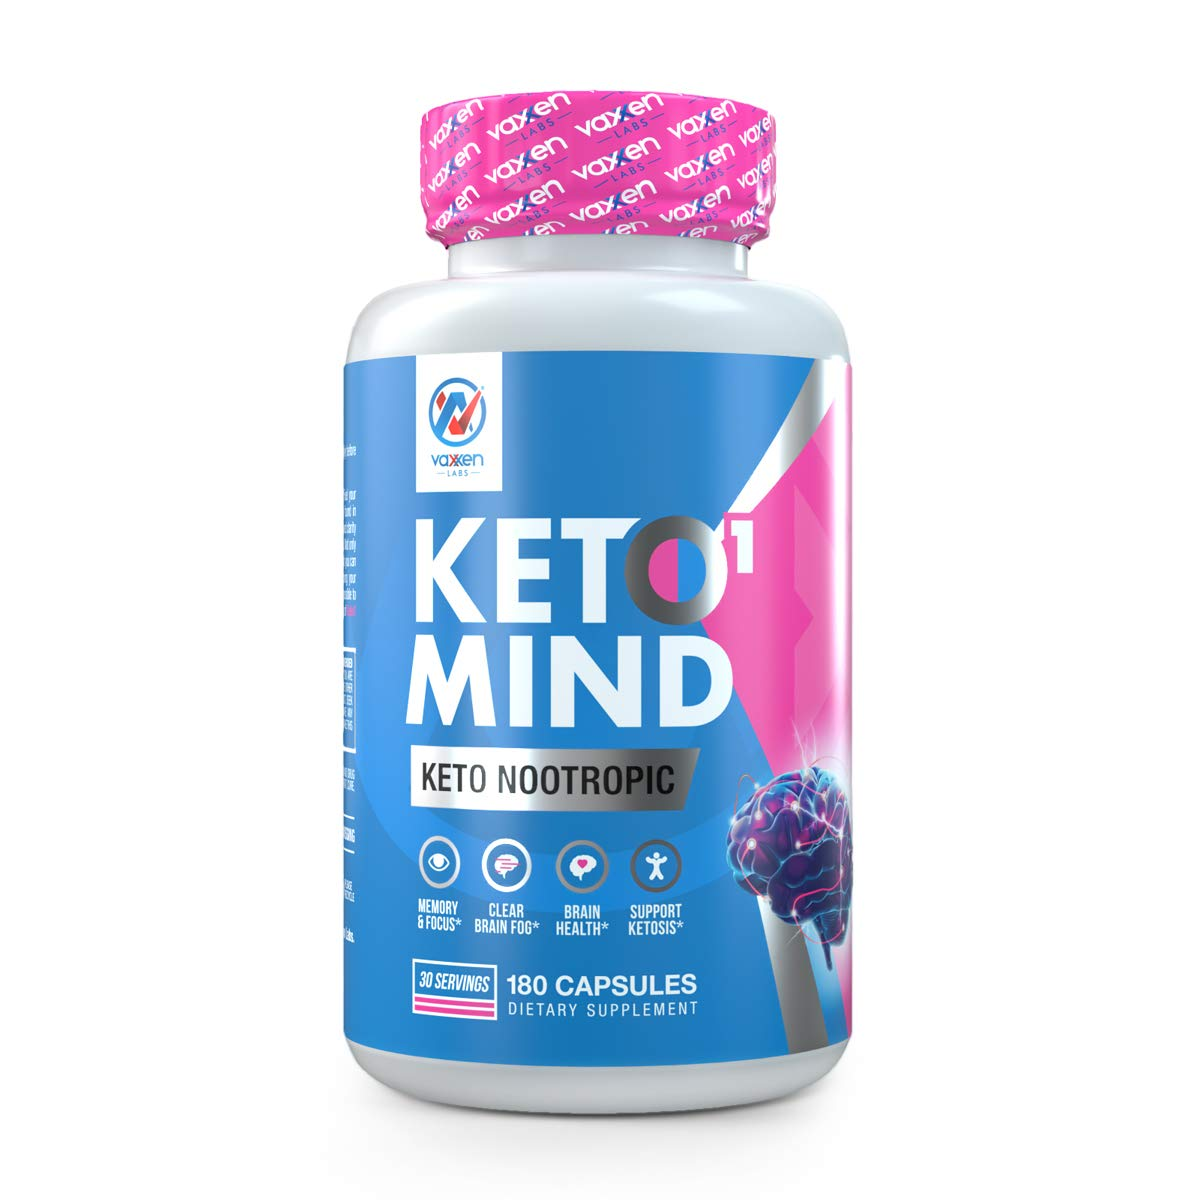 Vaxxen Labs Keto1 Mind Nootropic Product to Clear Brain Fog, Enhance Mood and Support Ketosis with Alpha GPC, Tyrosine & Beta Hydroxybutyrate - 30 Day Supply